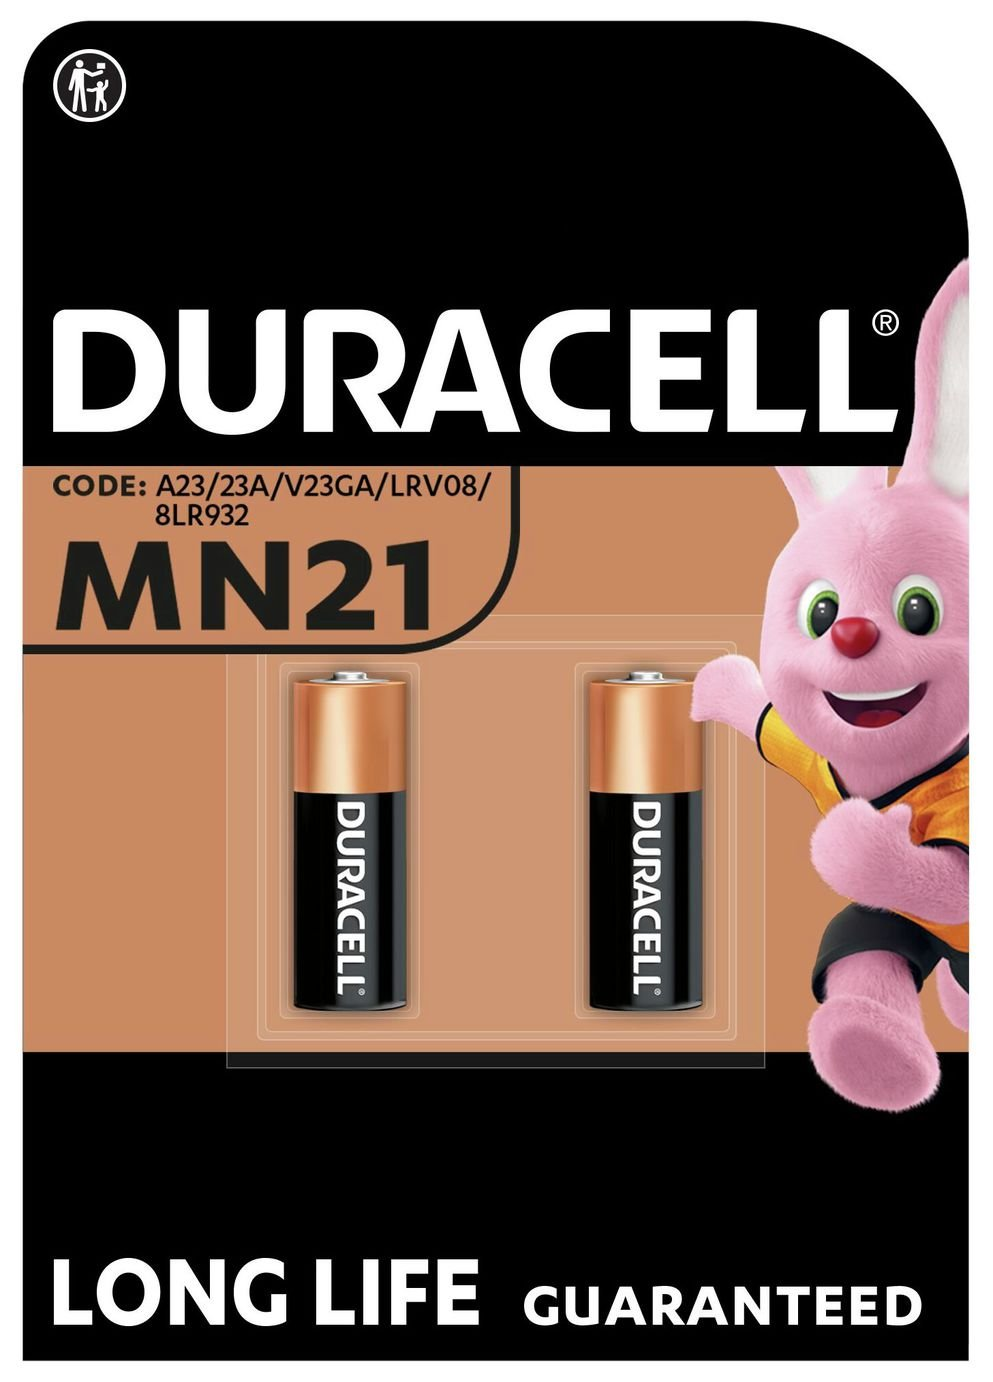 Duracell Specialty Alkaline MN21 Batteries - Pack of 2